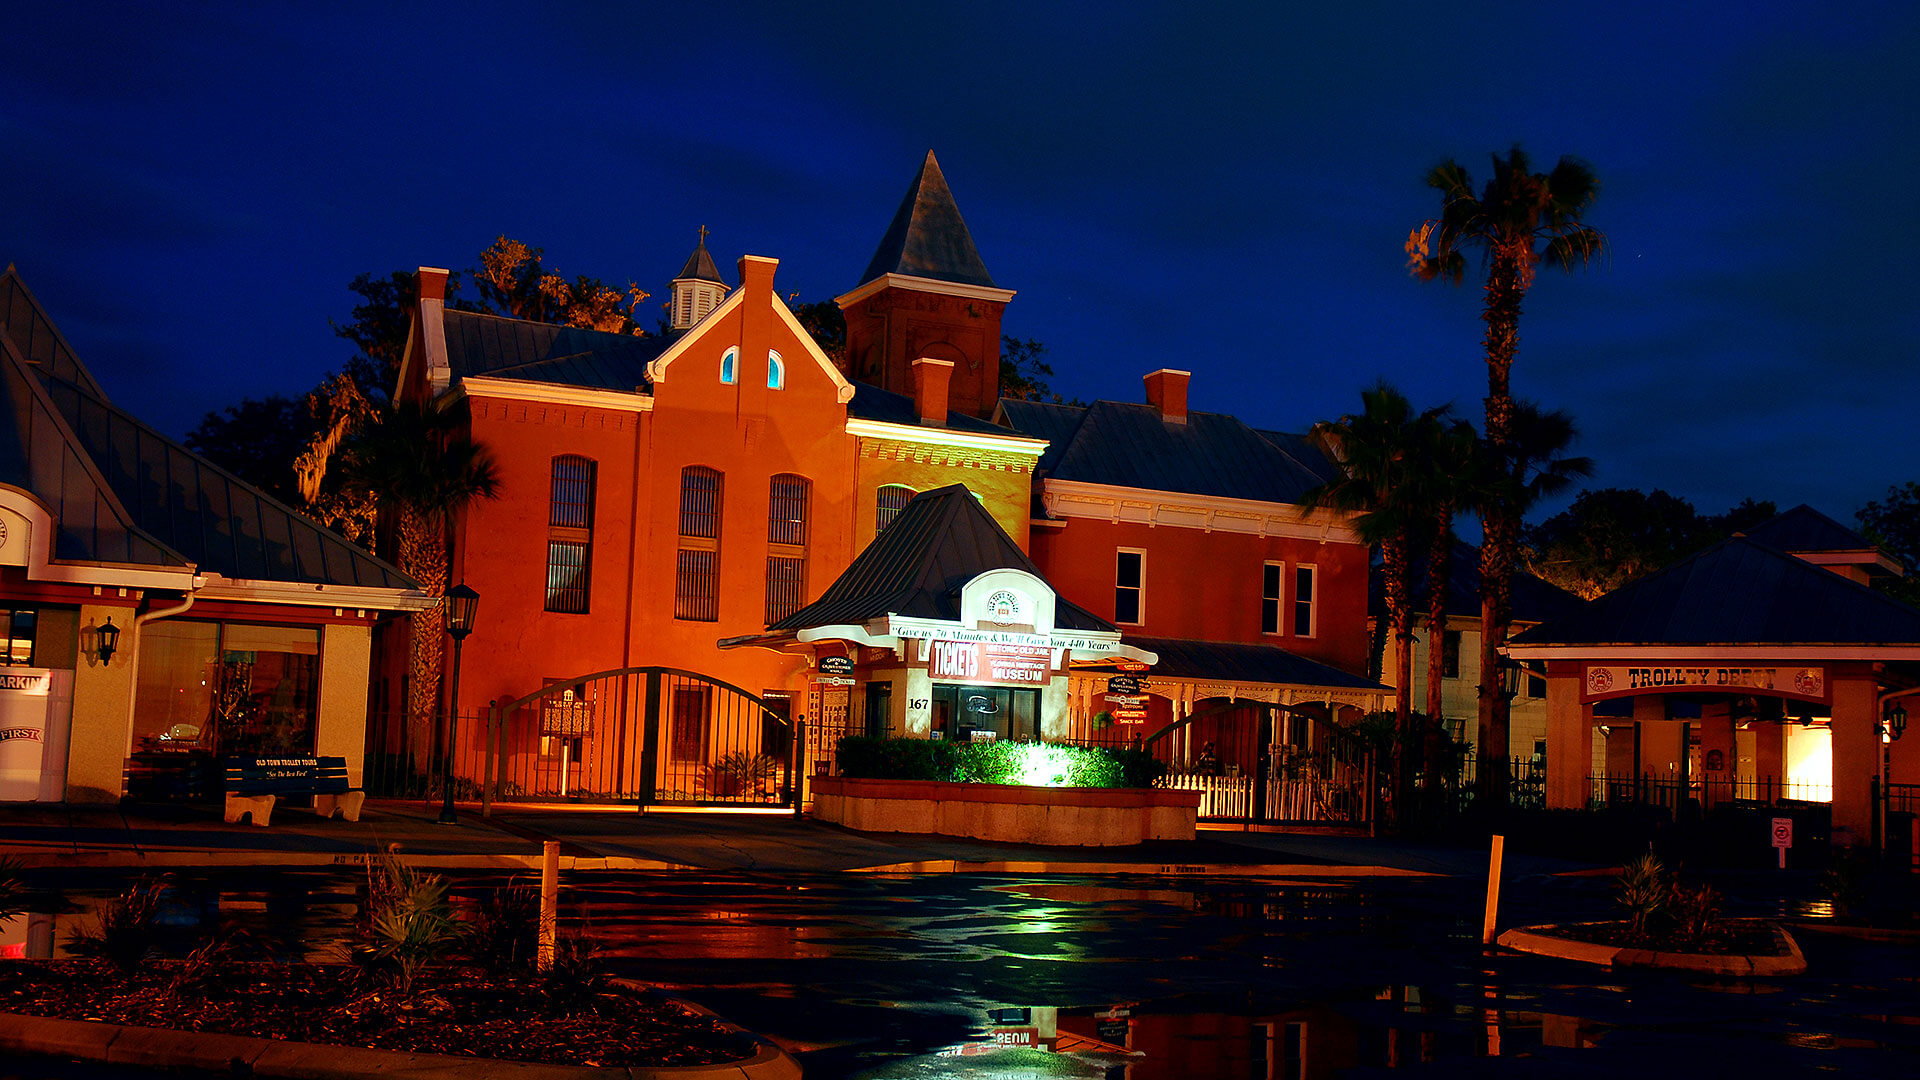 st augustine old jail at night